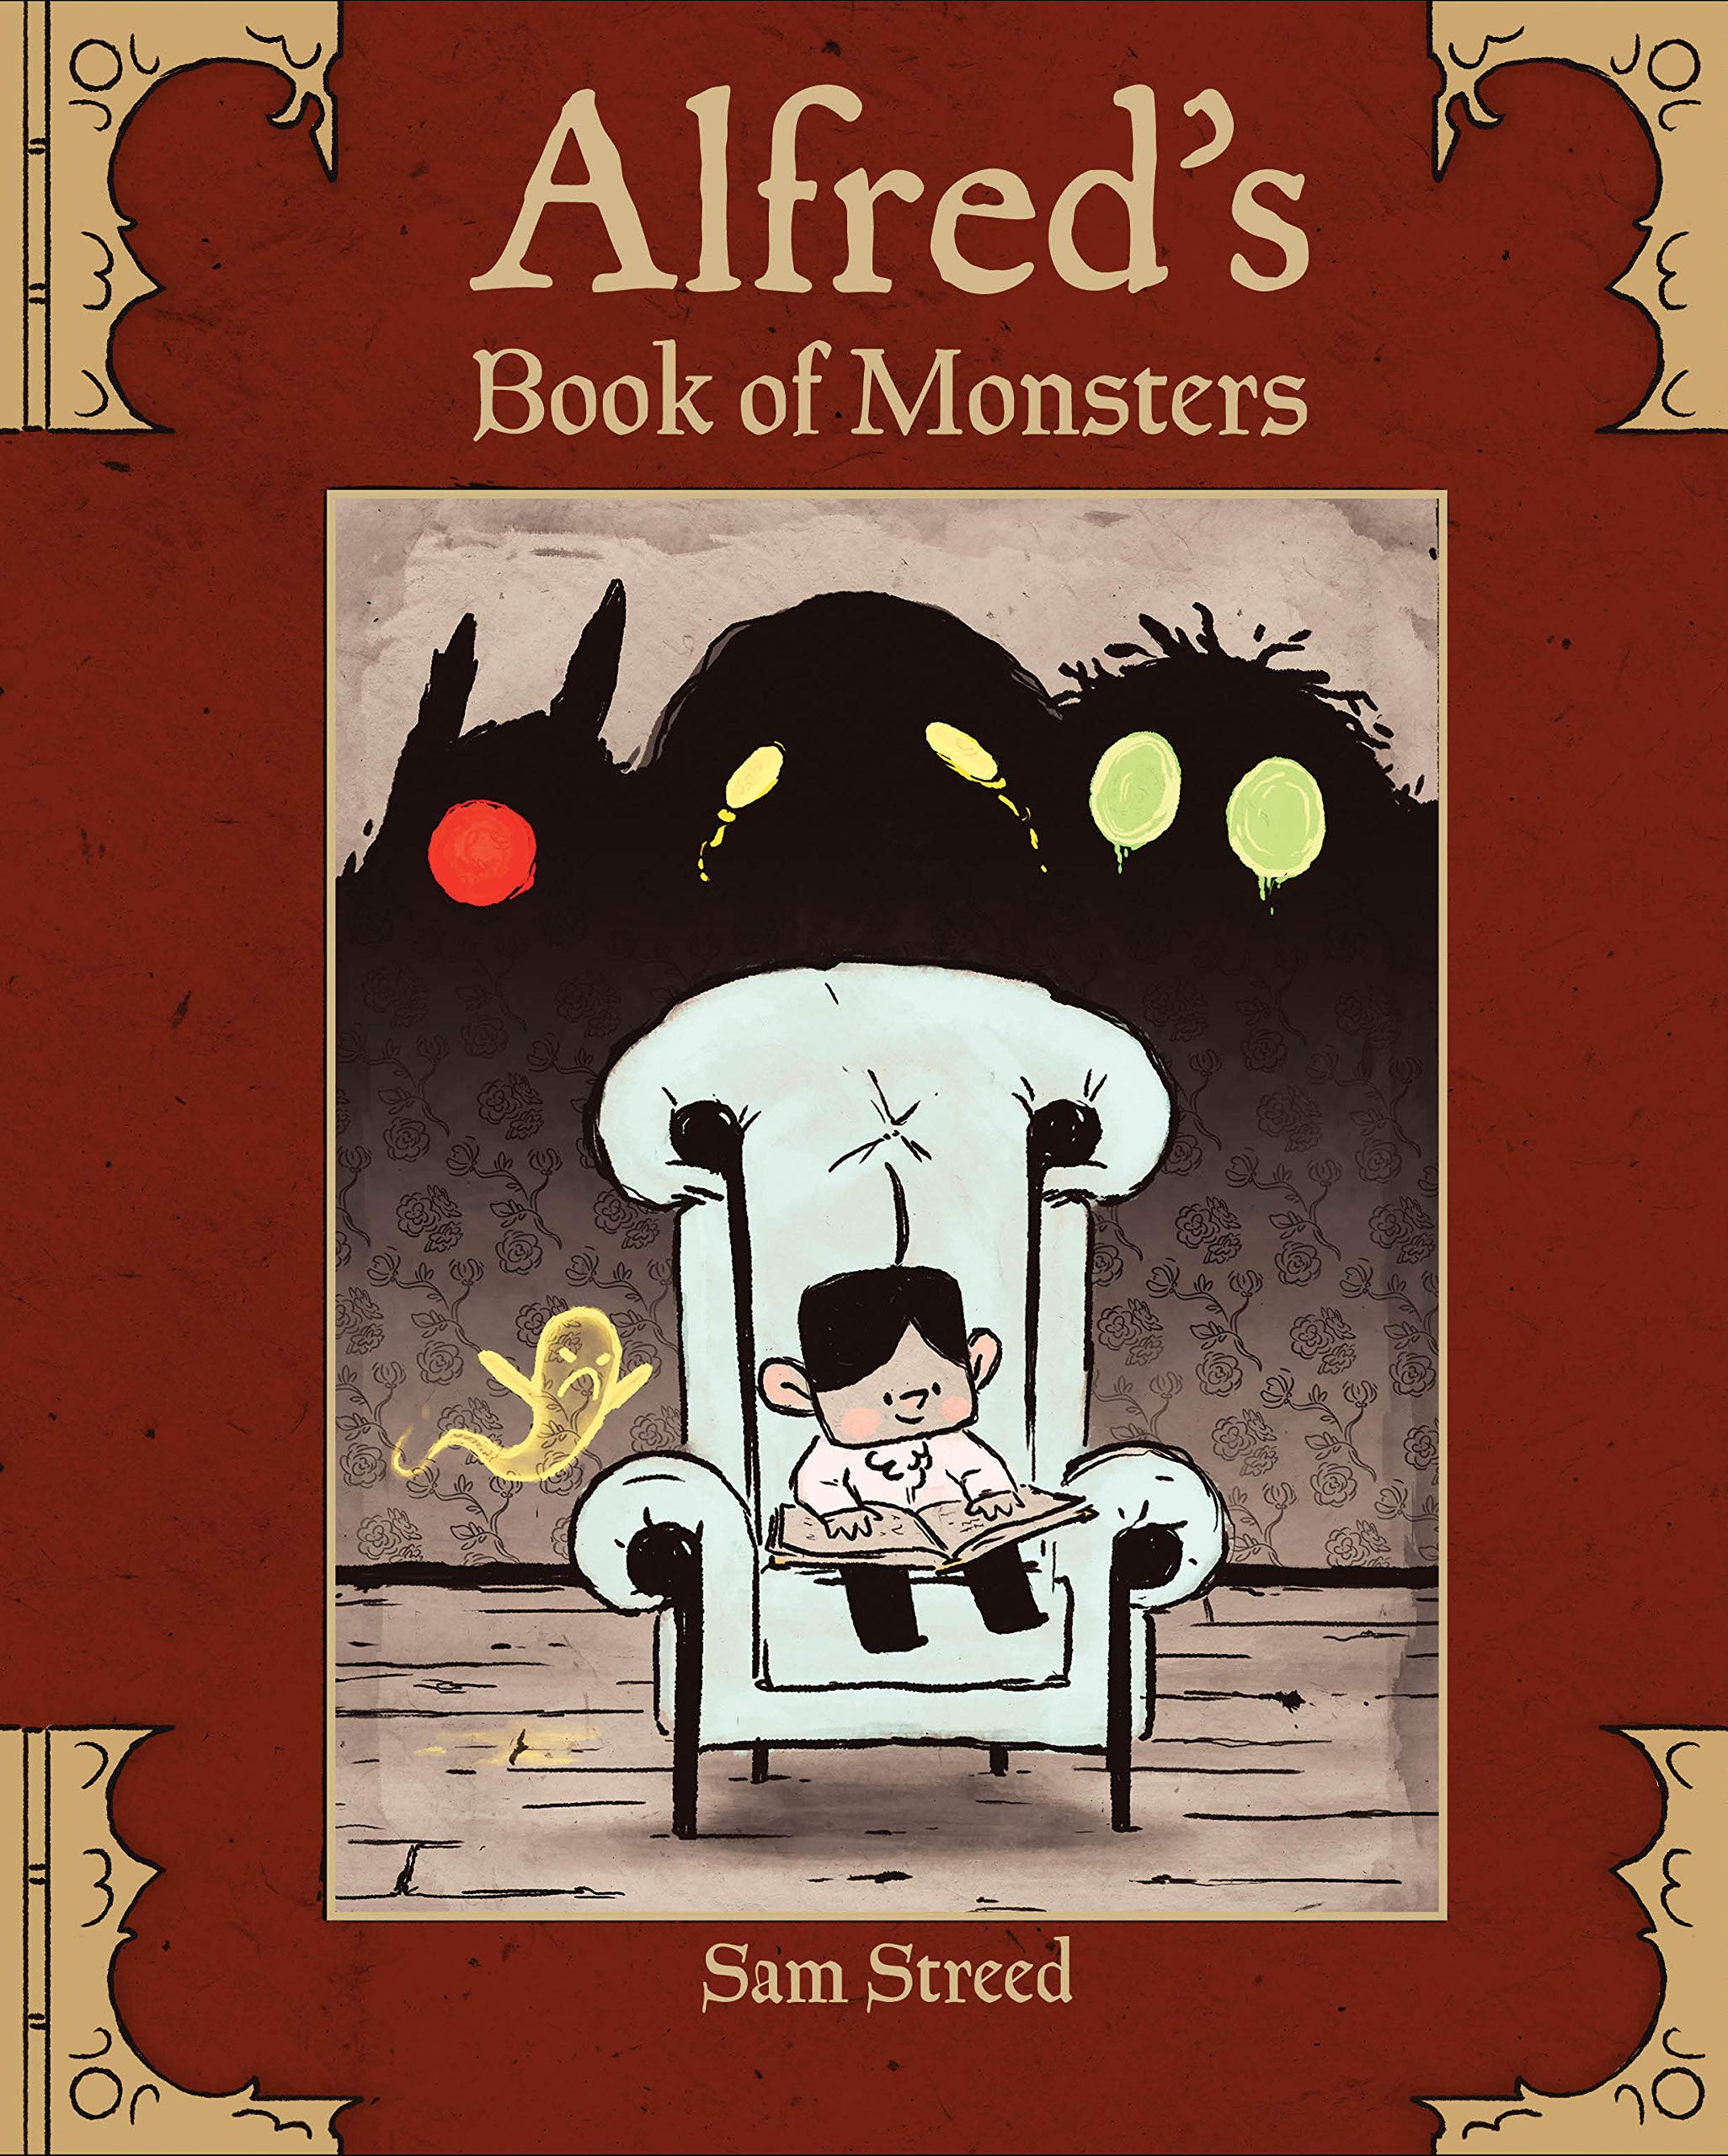 Image result for alfred's book of monsters